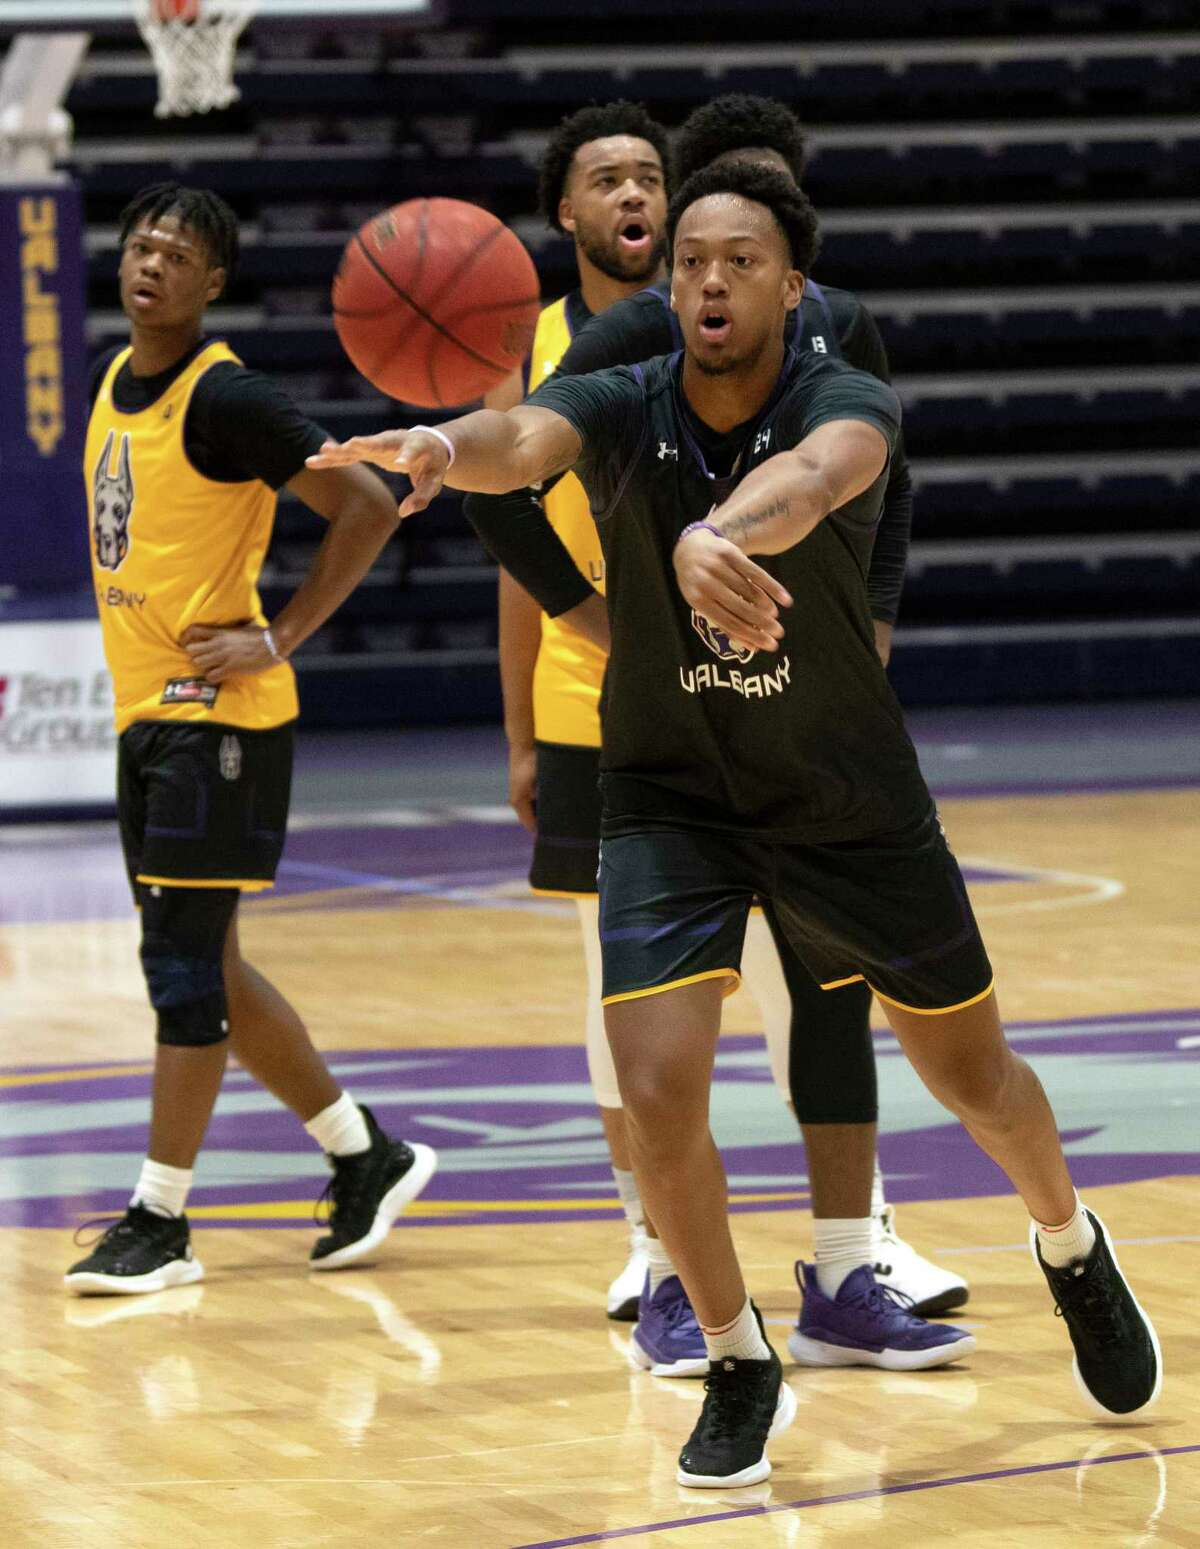 University at Albany basketball player Paul Newman passes the ball during practice at the SEFCU Arena on Thursday, Oct, 7, 2021 in Albany, N.Y.